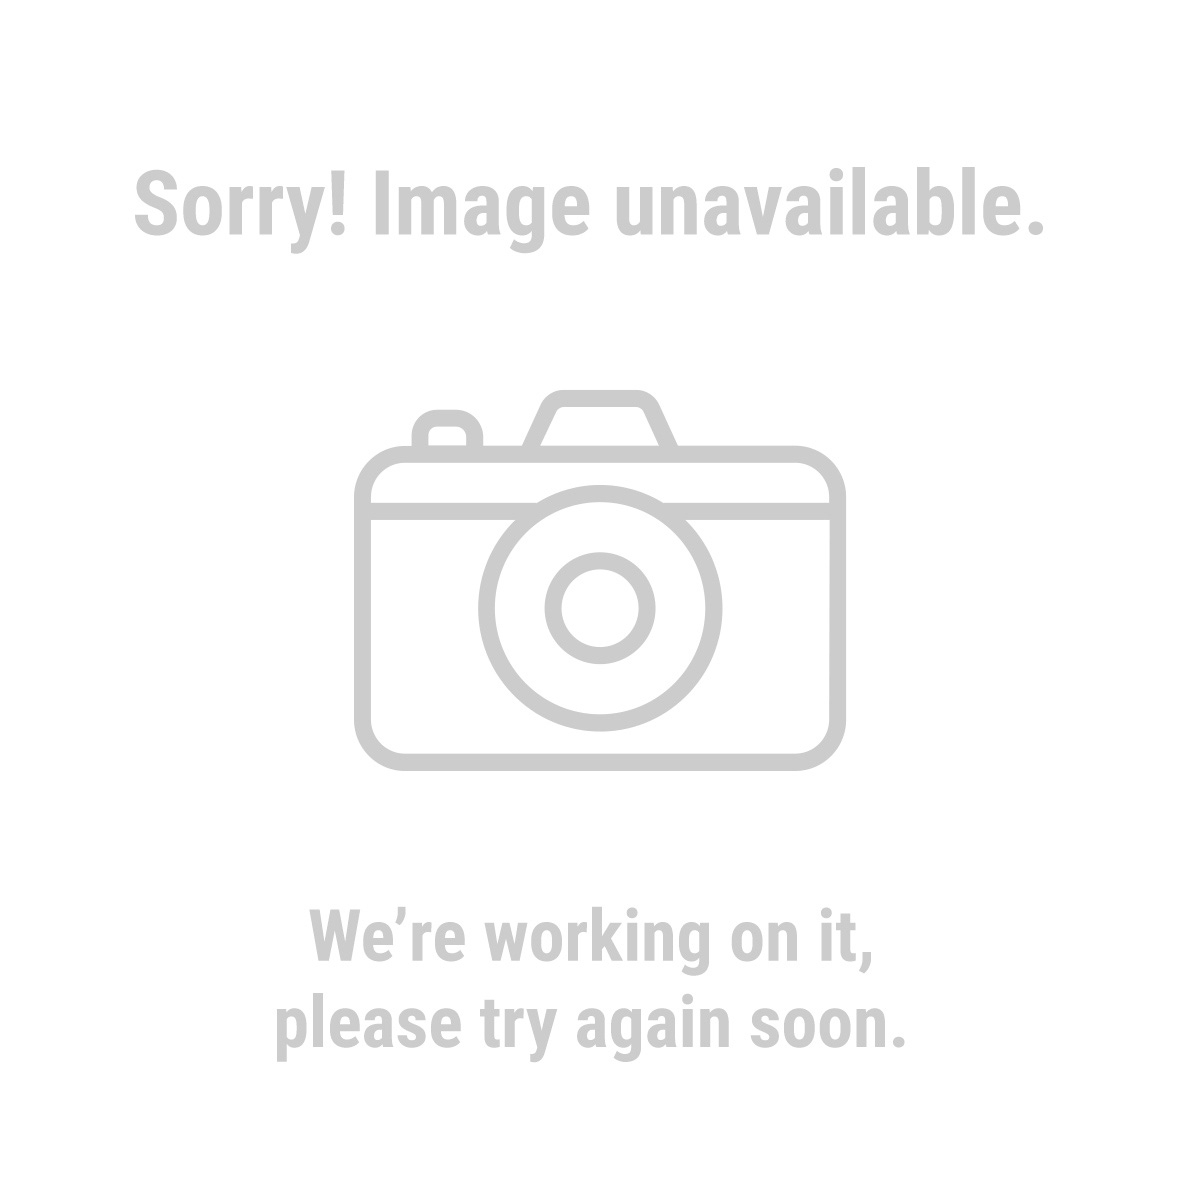 HARDY 68391 Heavy Duty PVC Dipped Gloves